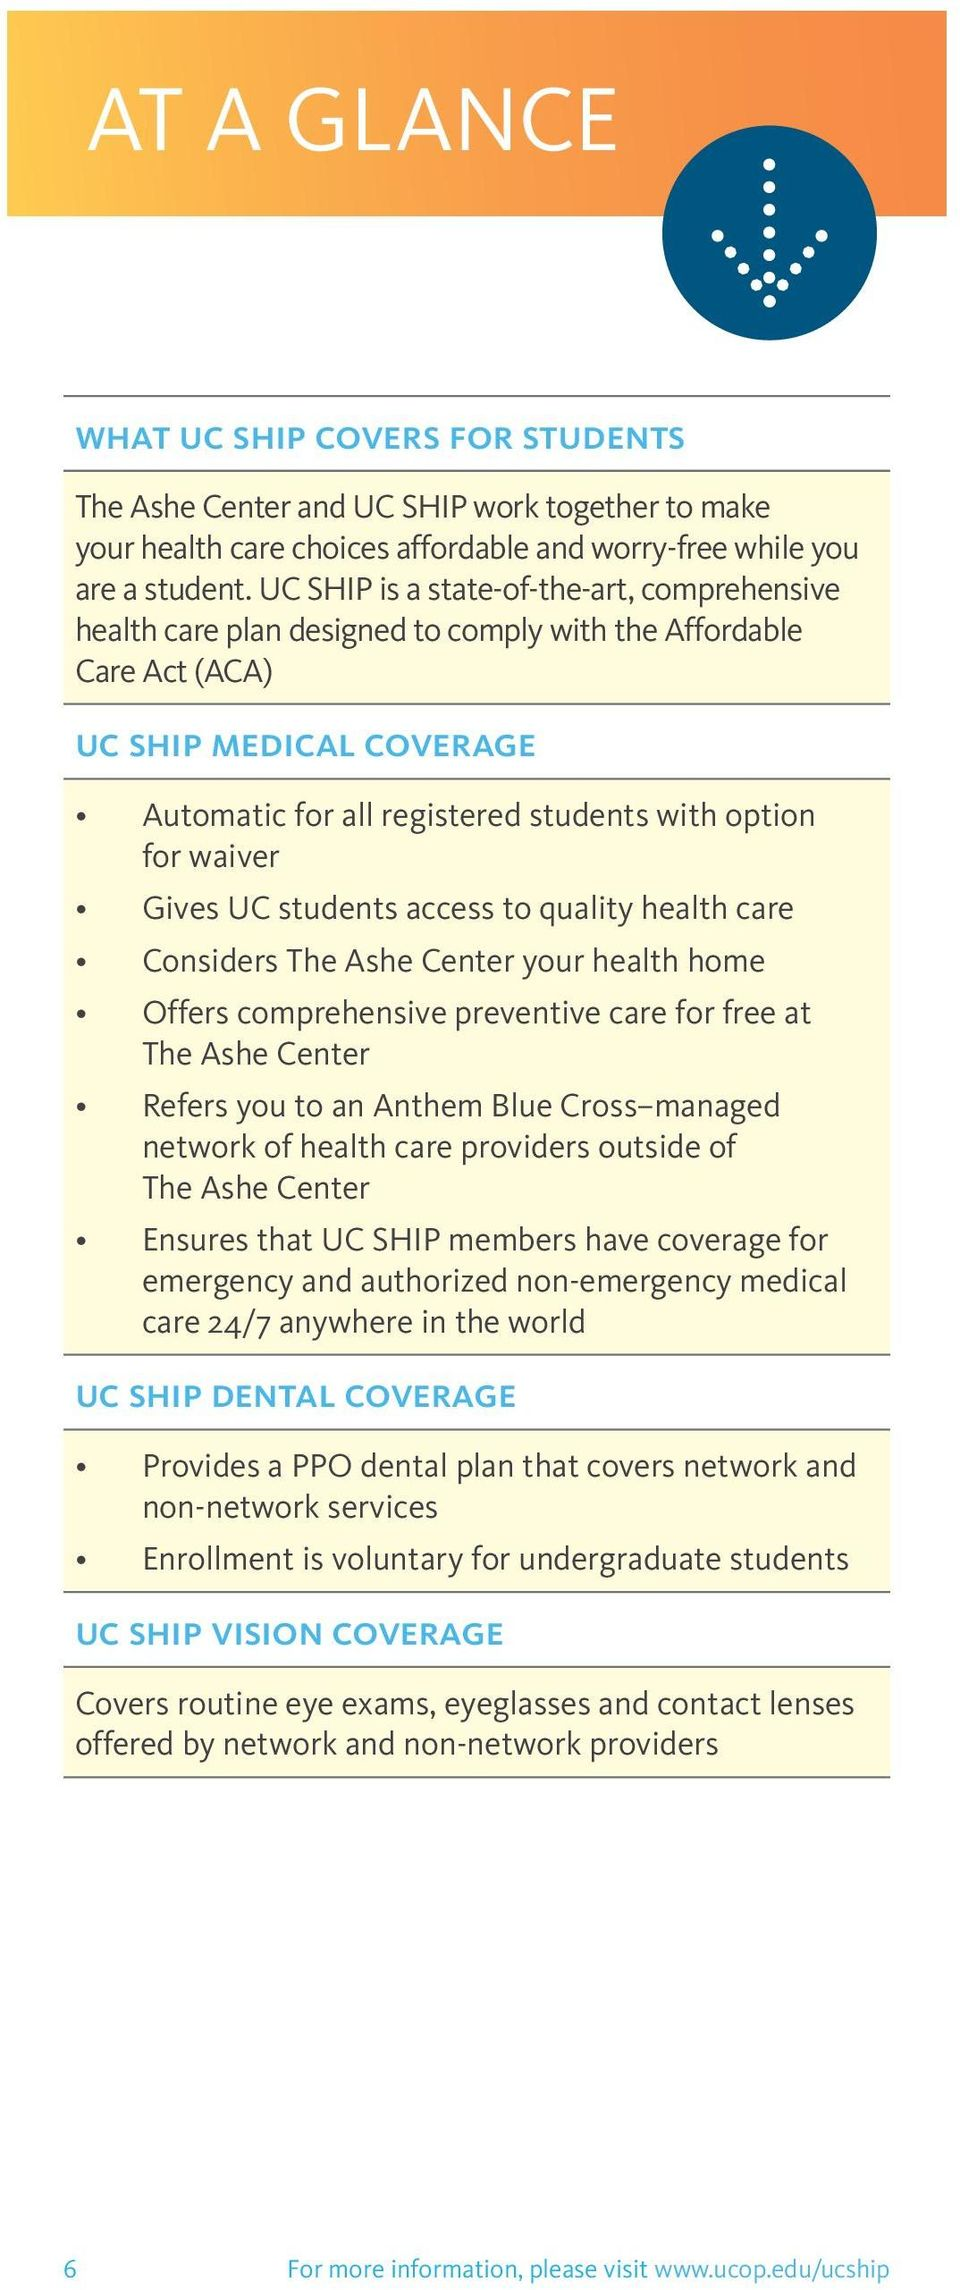 waiver Gives UC students access to quality health care Considers The Ashe Center your health home Offers comprehensive preventive care for free at The Ashe Center Refers you to an Anthem Blue Cross